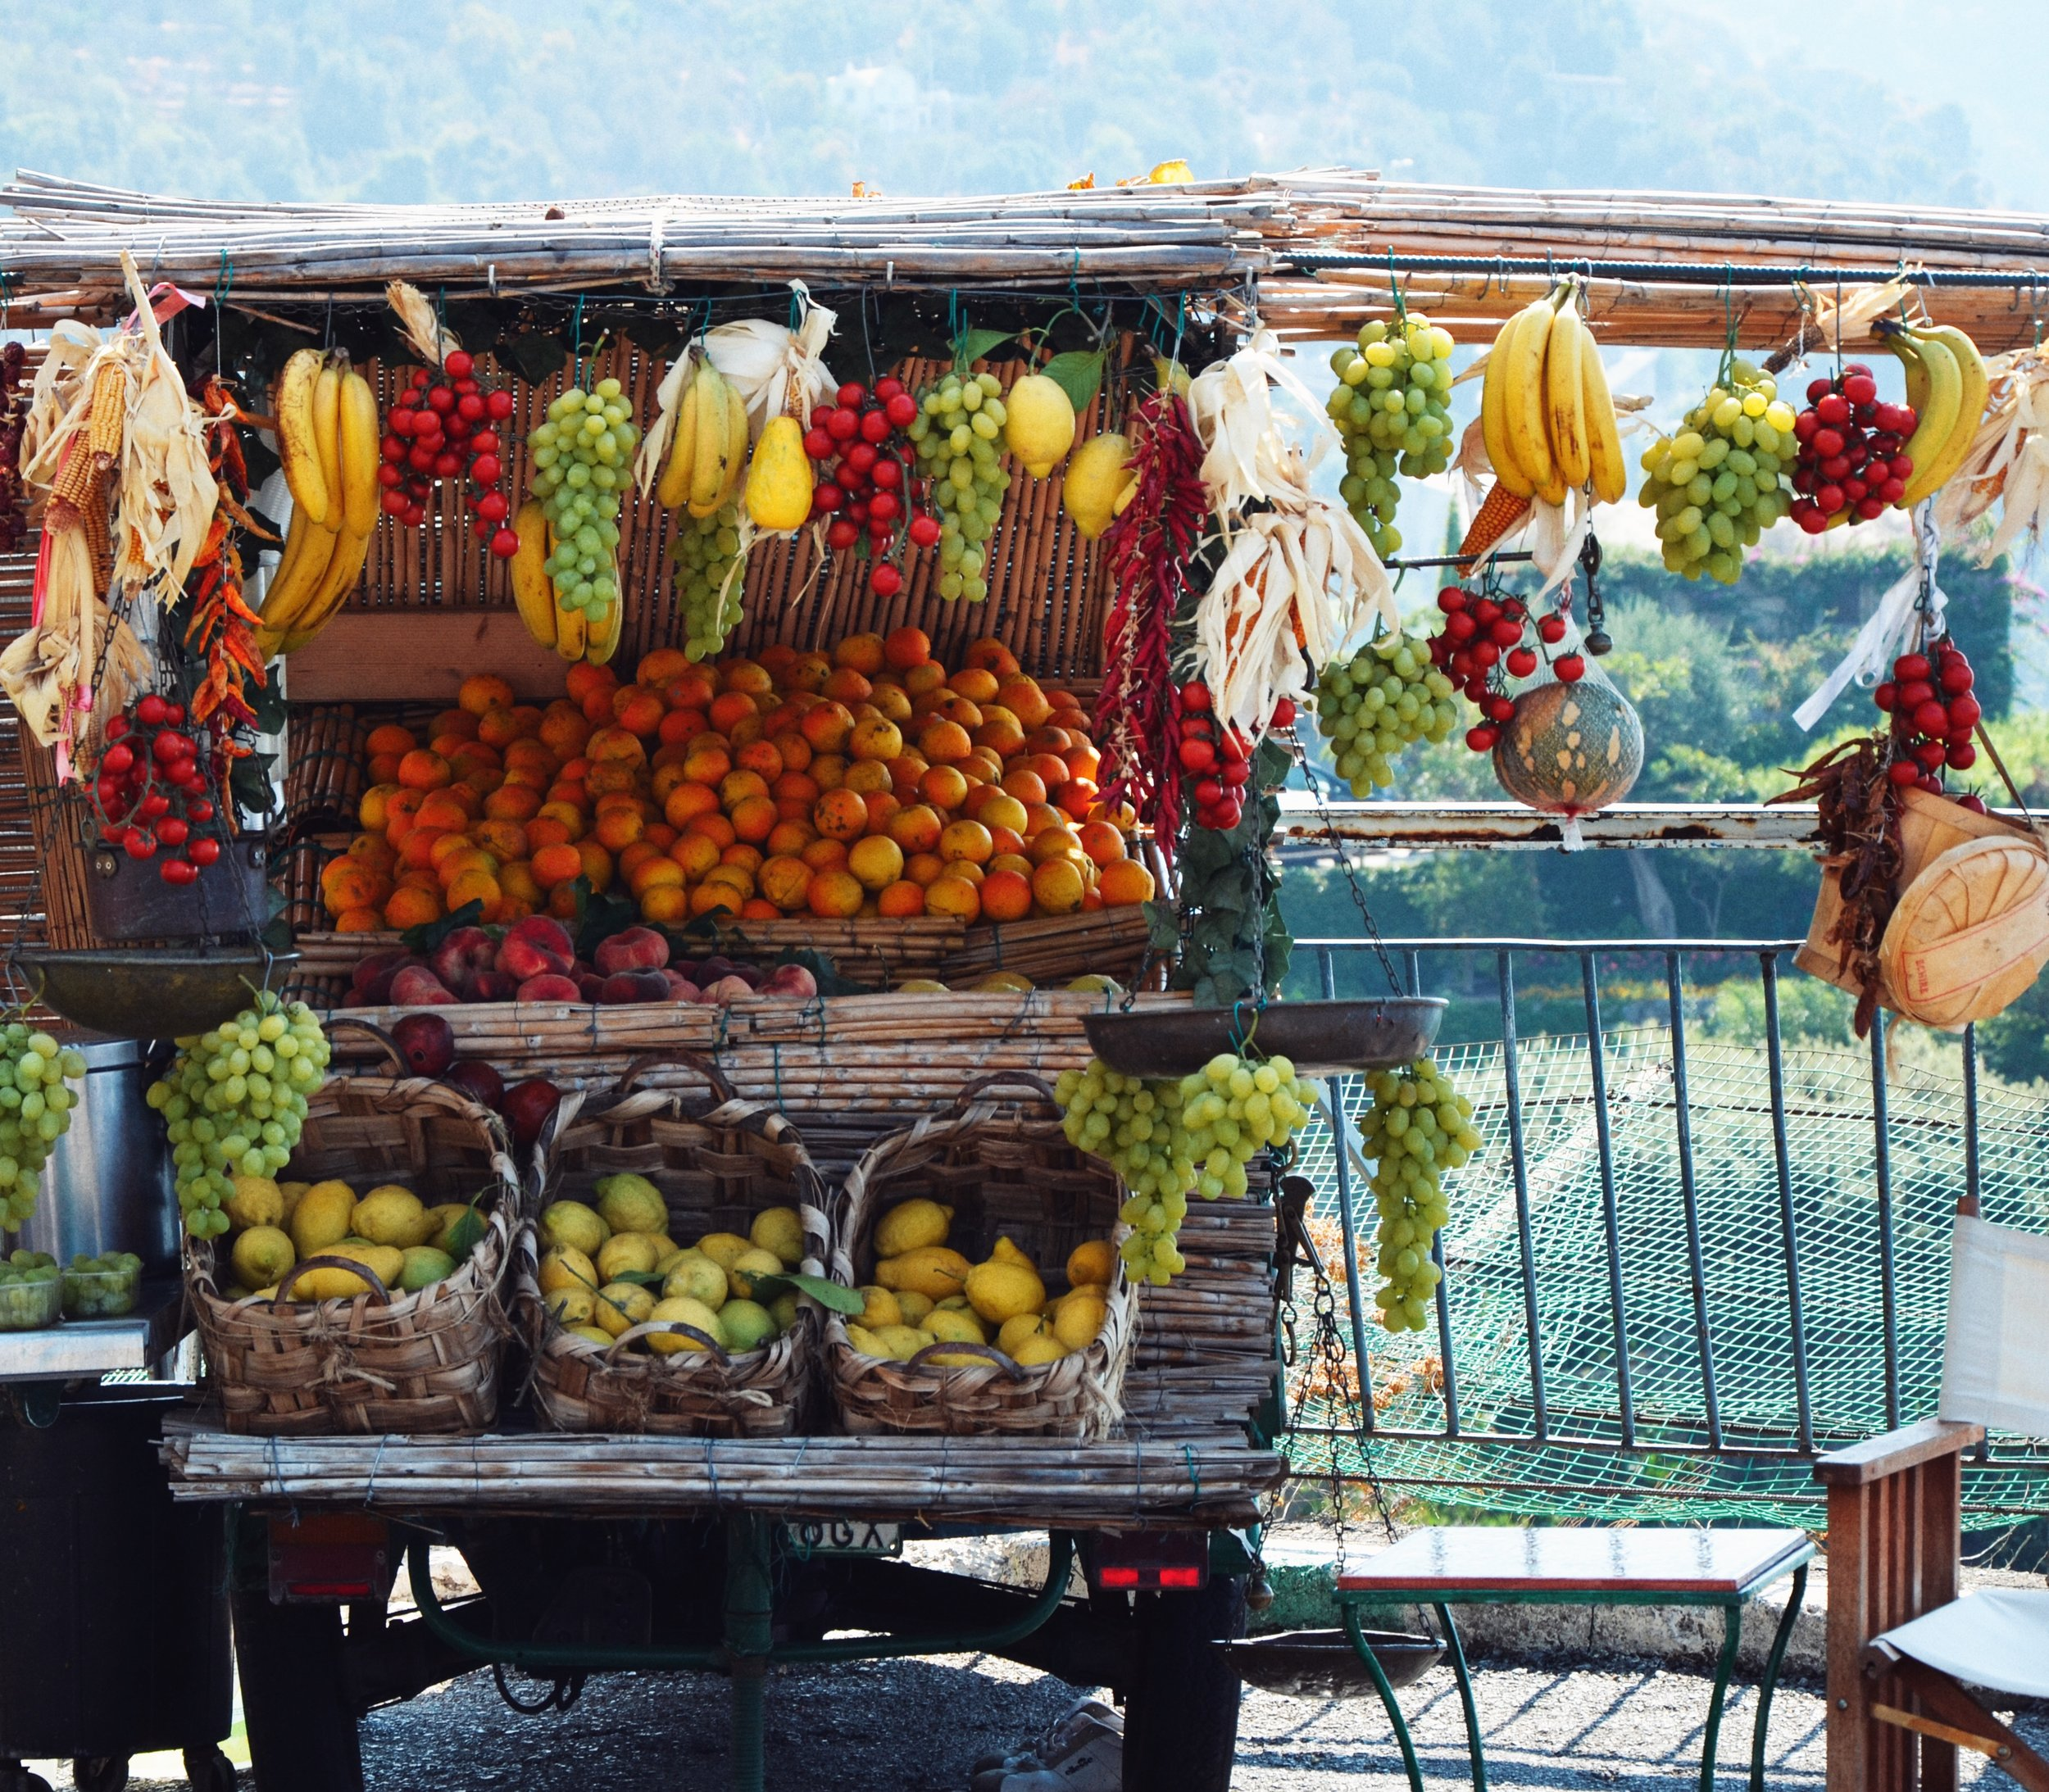 FRUIT STAND ON THE WAY TO POSITANO